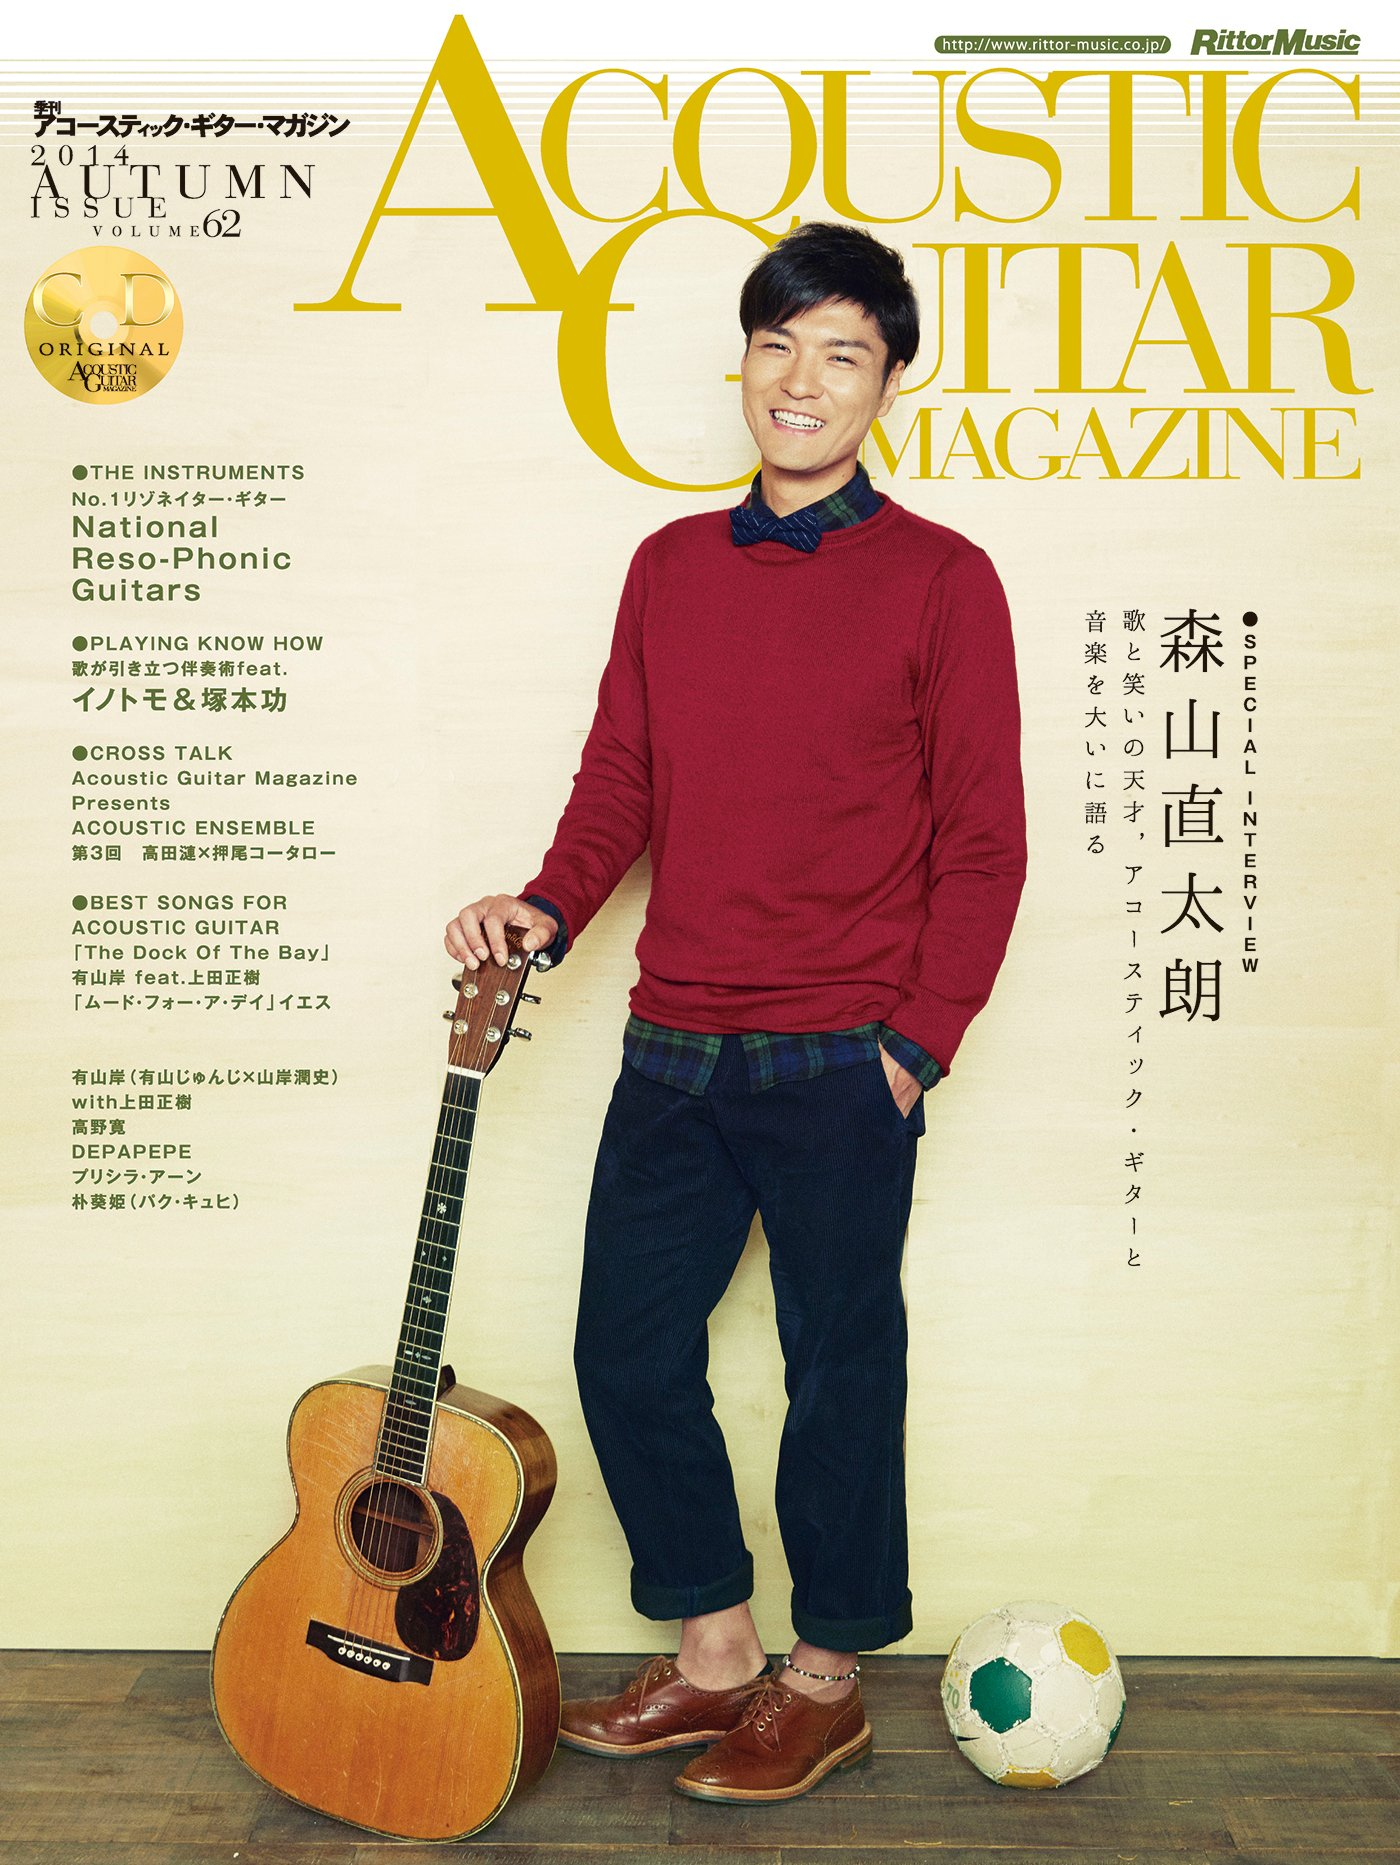 ACOUSTIC GUITAR MAGAZINE Vol.62